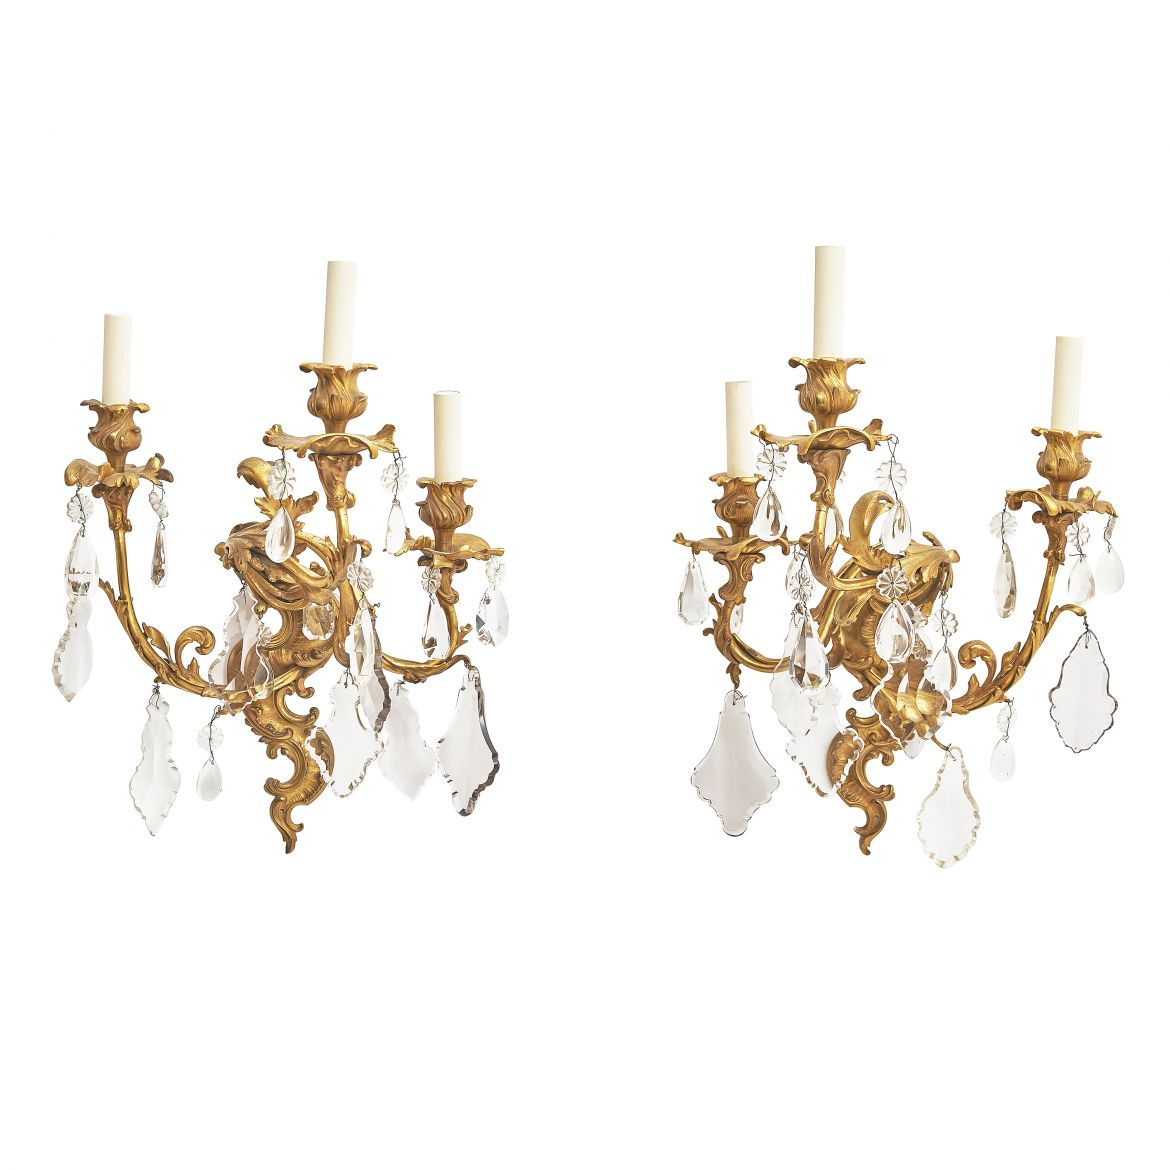 French Louis XV style Sconces